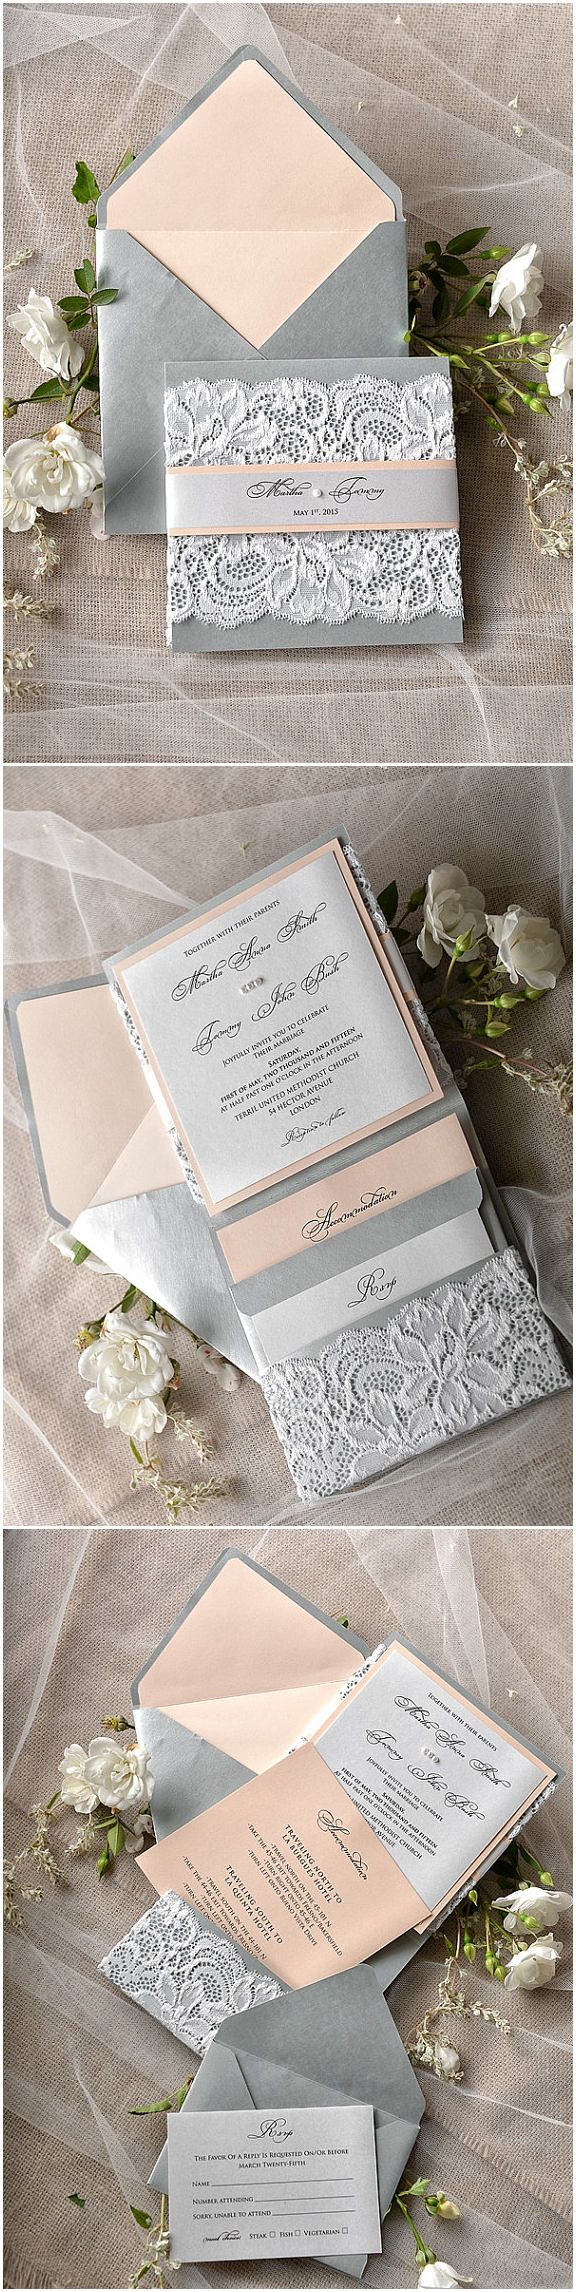 Top 10 Rustic Wedding Invitations to WOW Your Guests Vintage lace